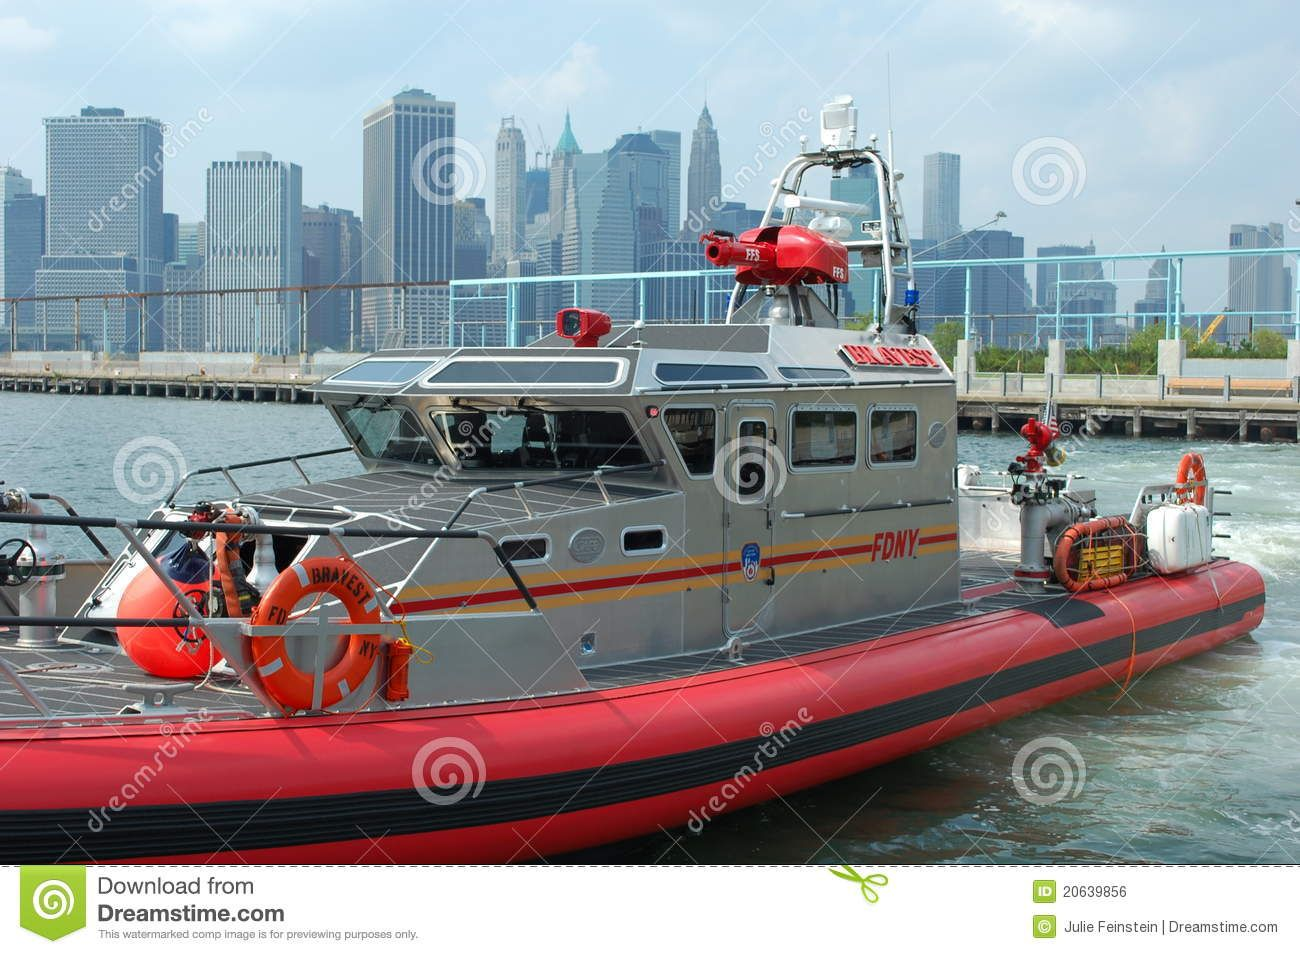 Pin by Richard Tichenor on Public Safety Boats in 2020